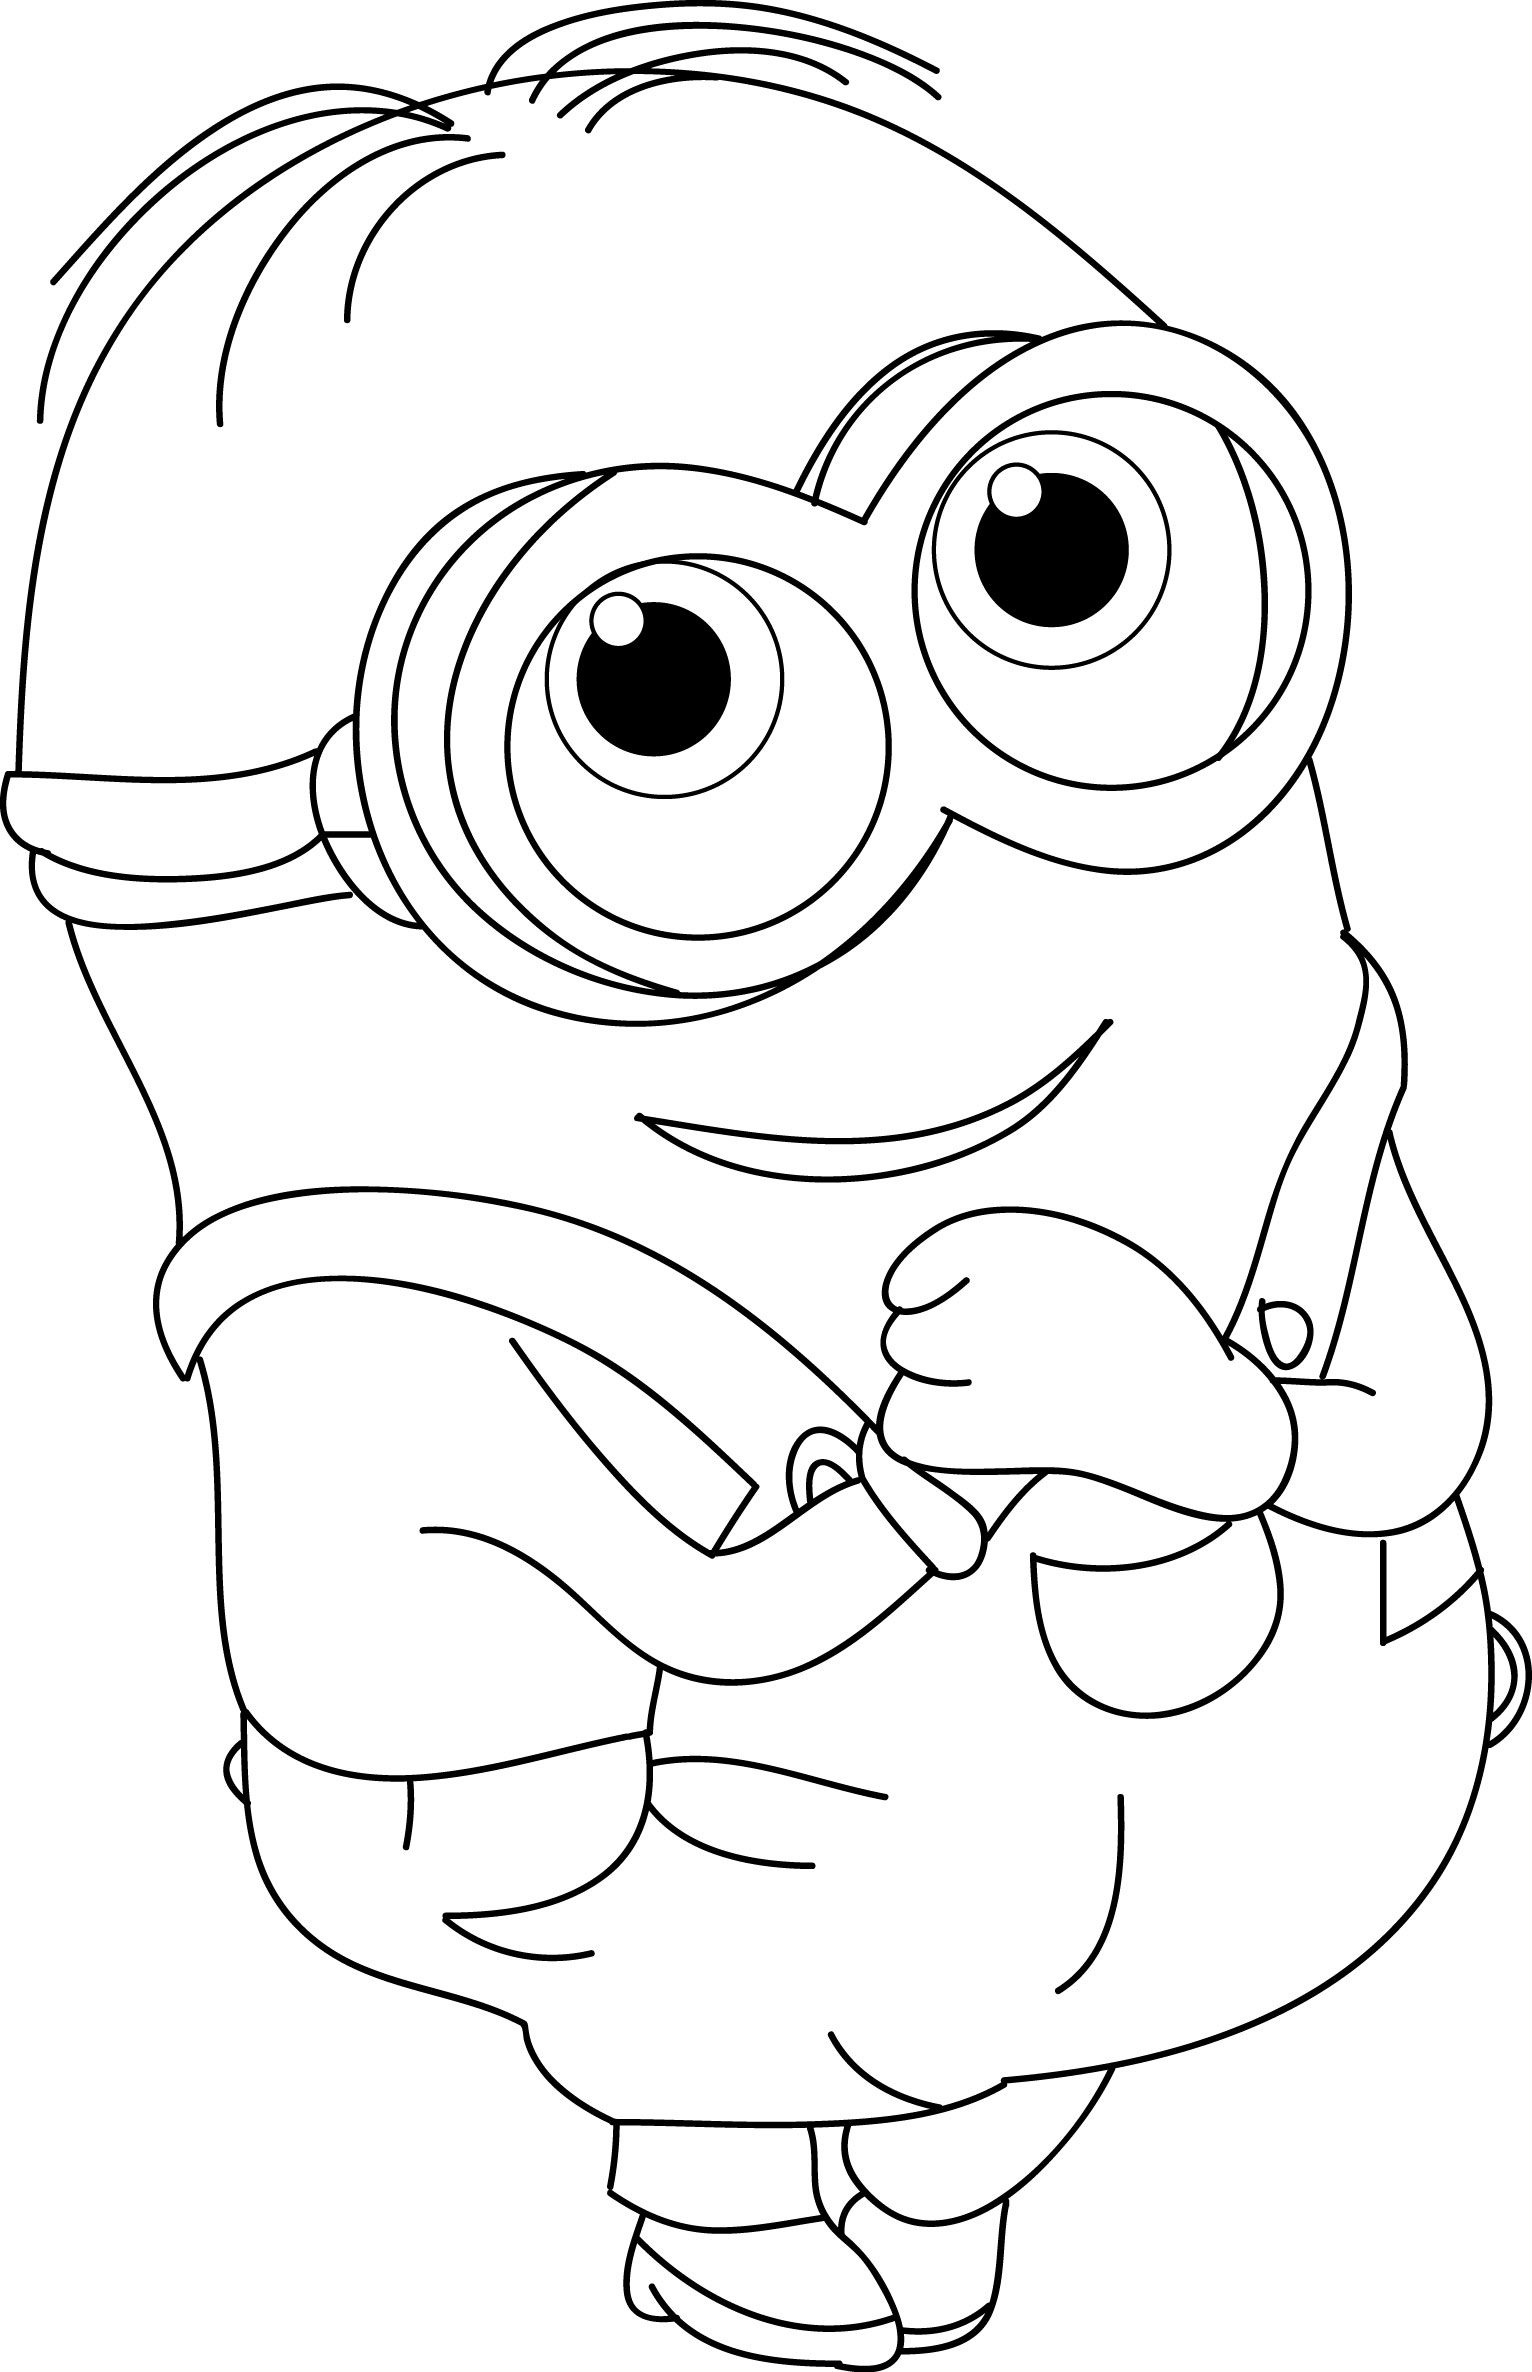 minion kevin coloring pages minion black and white kevin minion pages coloring